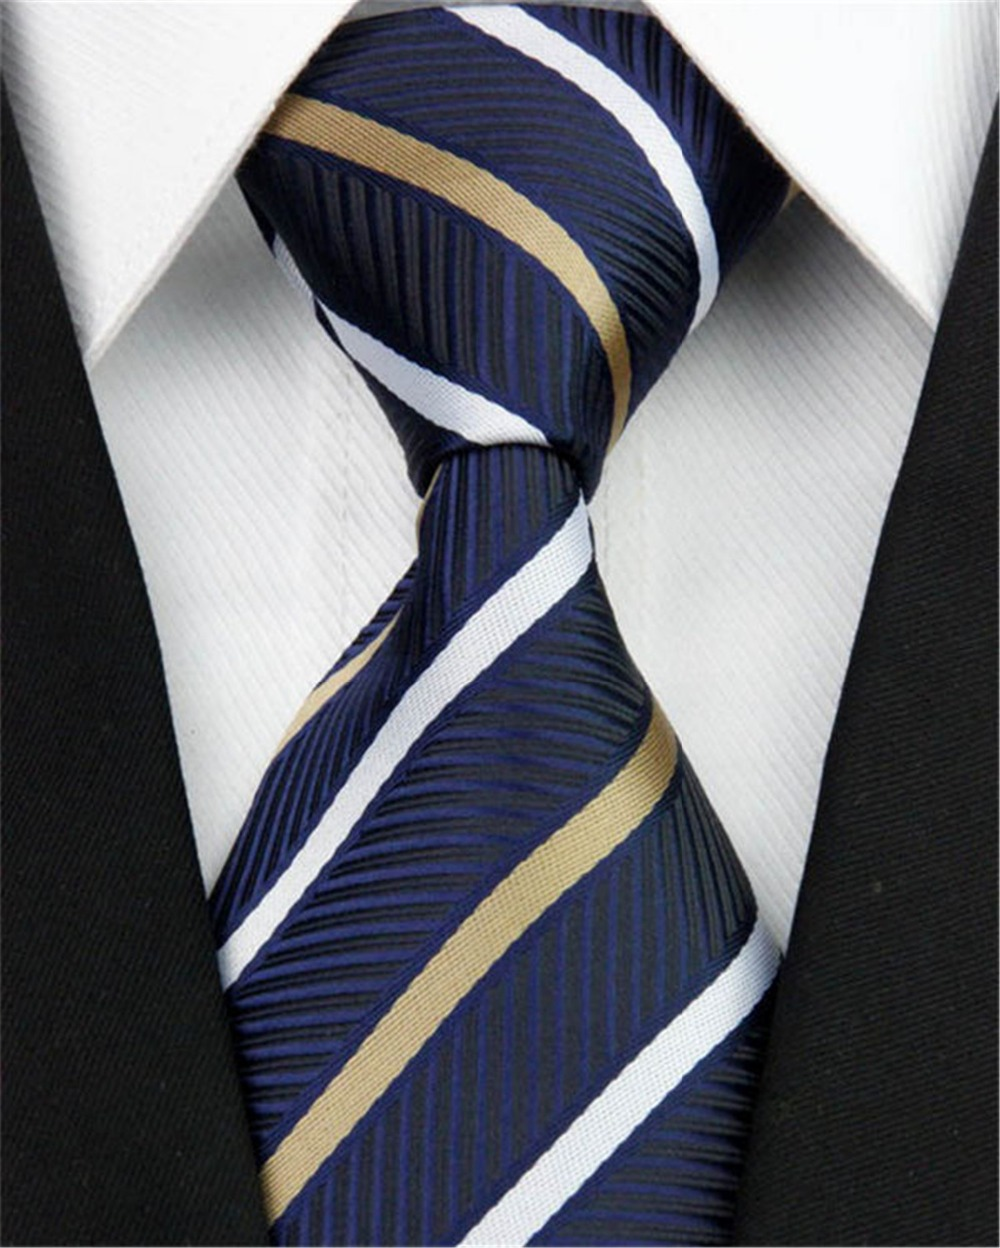 Classic Business Striped Pattern Tie Men Accessories 100% Silk Formal Wedding Style Jacquard Woven Necktie 4 inch/10cm Nt200 - Jos Store store